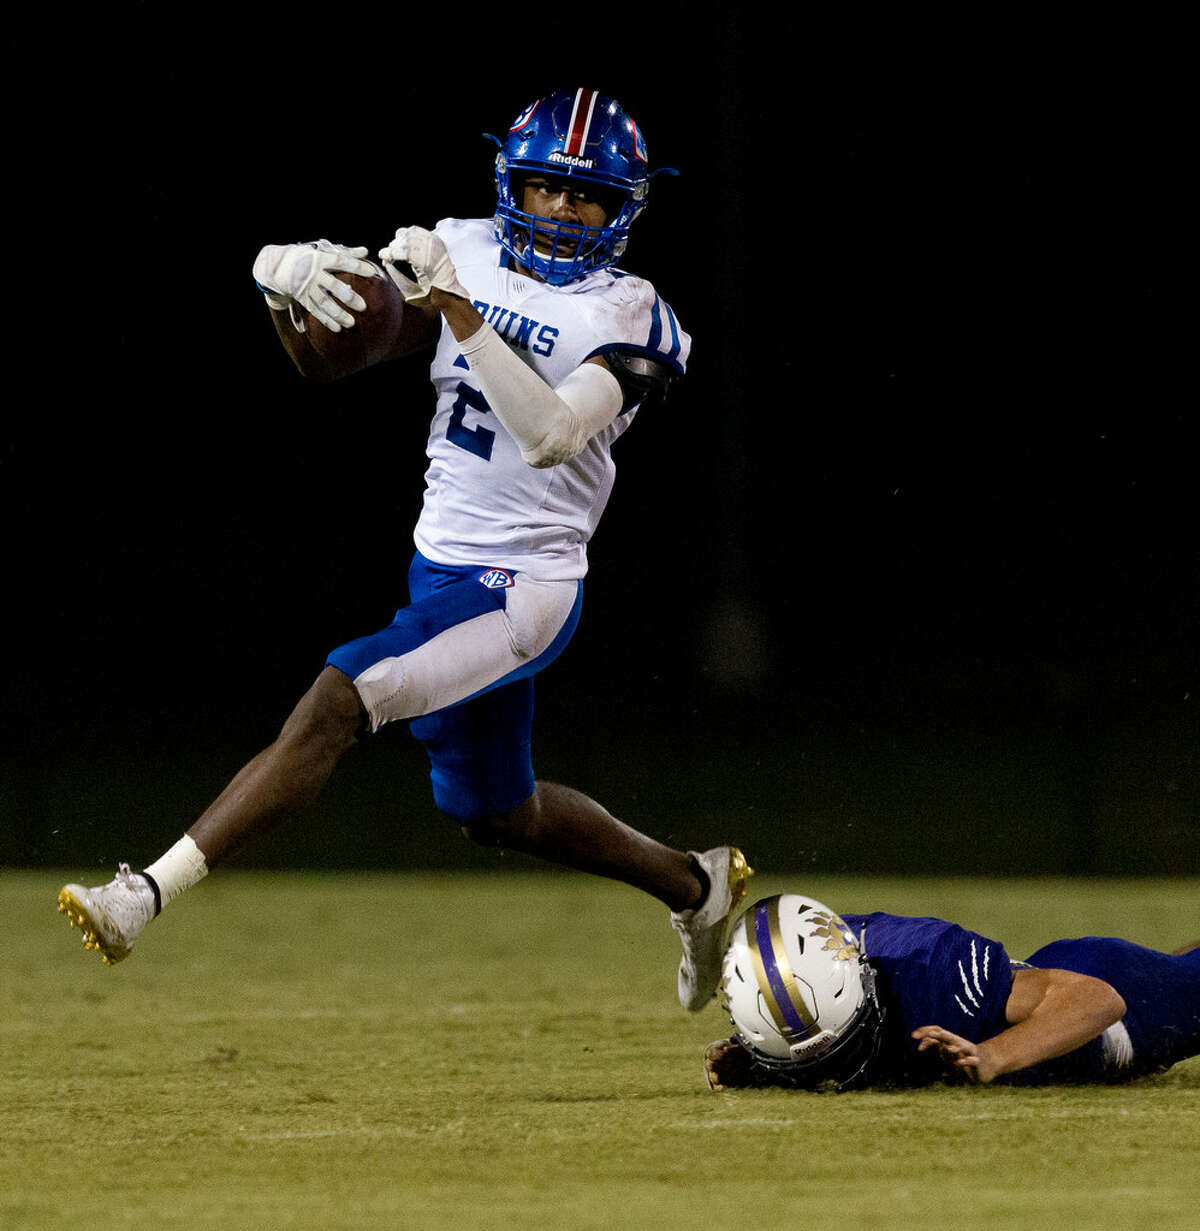 Deonte Simpson School: West Brook Year: Junior Notes: Simpson had 450 receiving yards and four touchdowns as a junior.